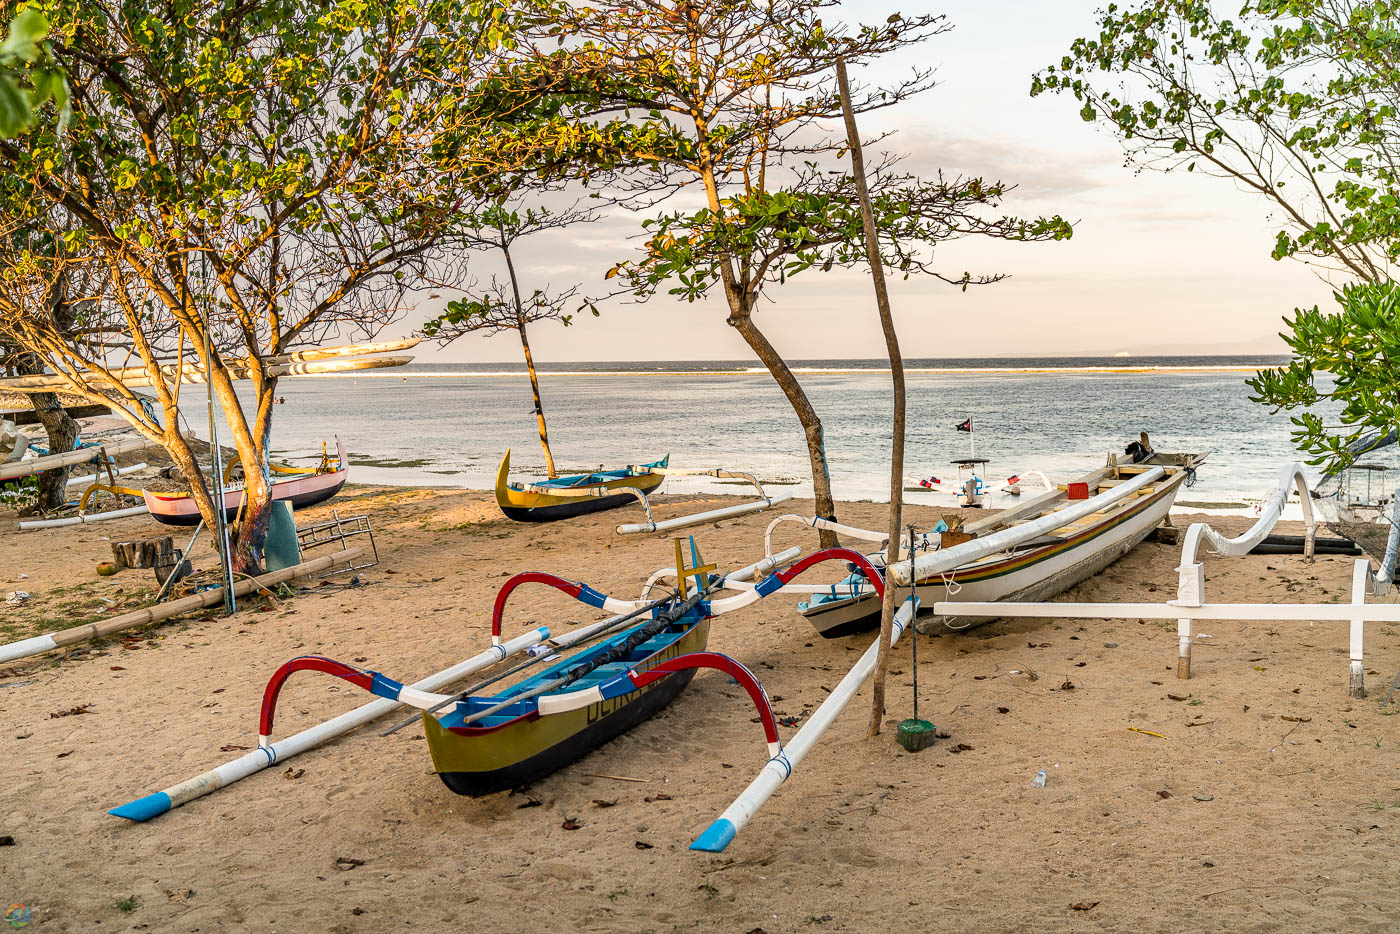 Colorful outrigger boats waiting for passengers on Sanur beach at sunset.